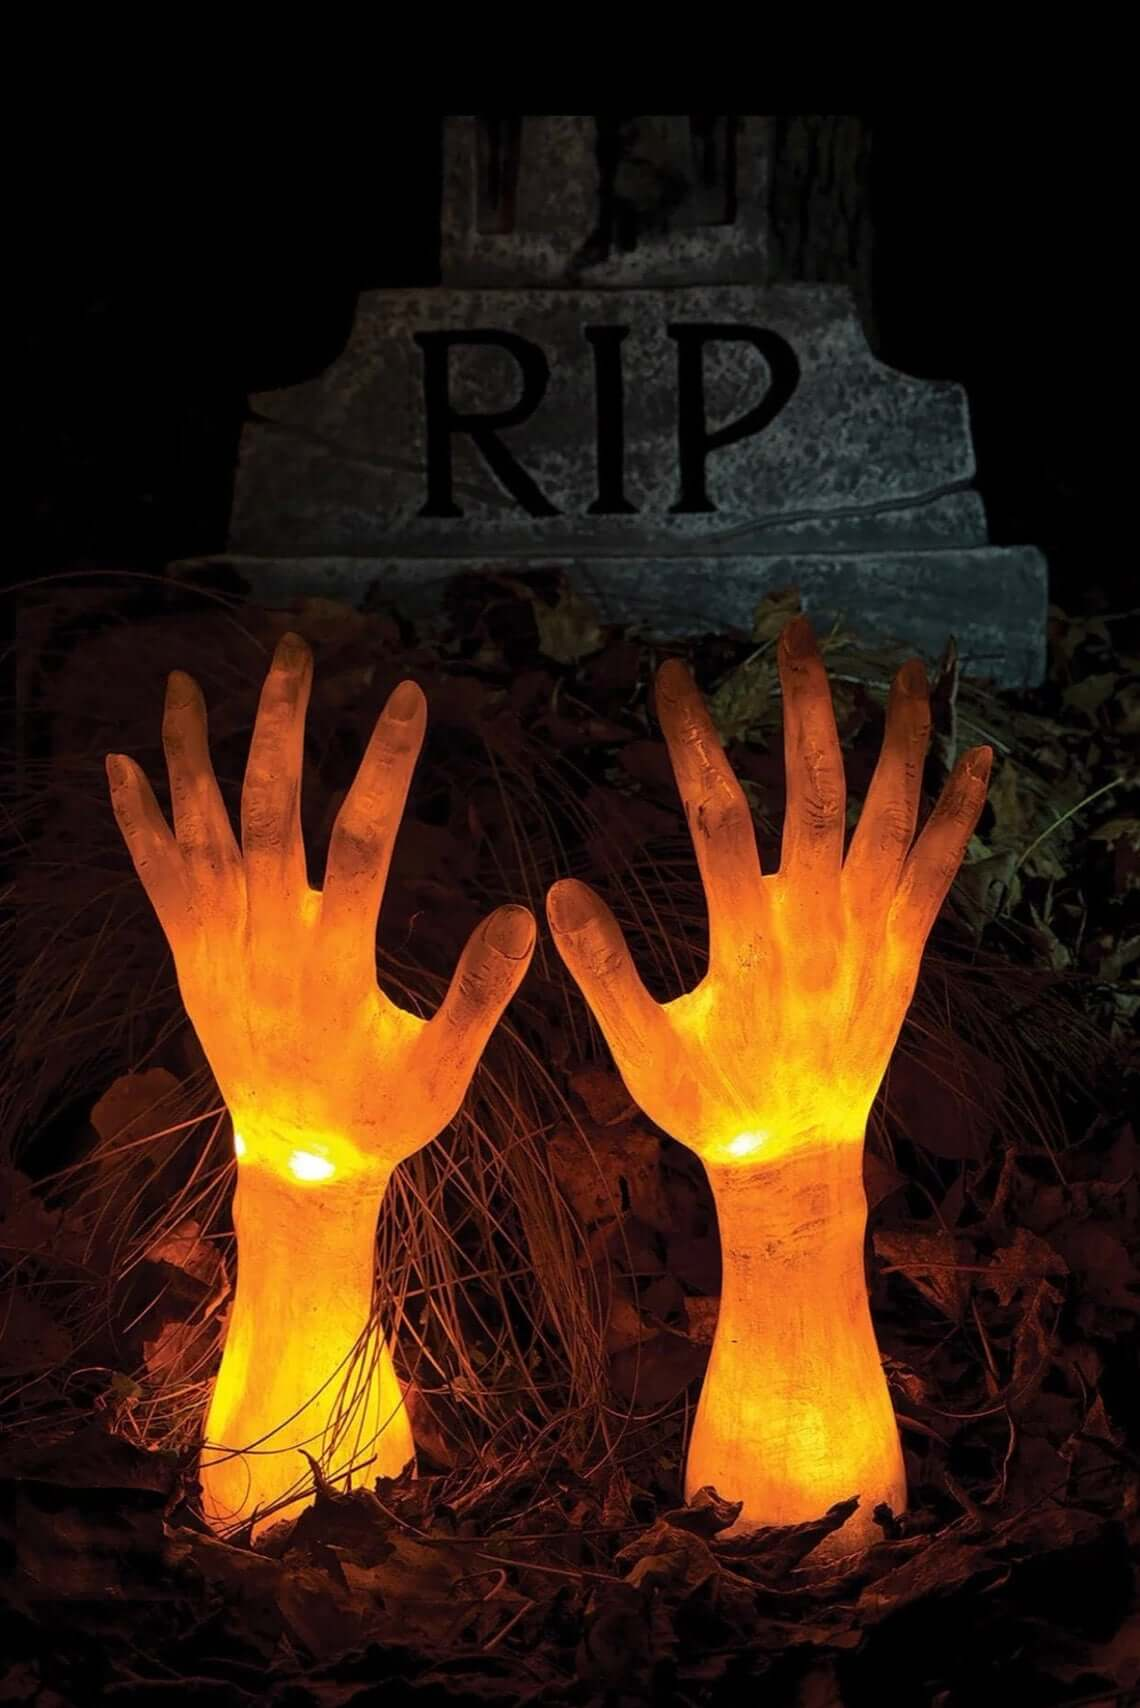 Glowing Corpse Hands Reaching for Freedom